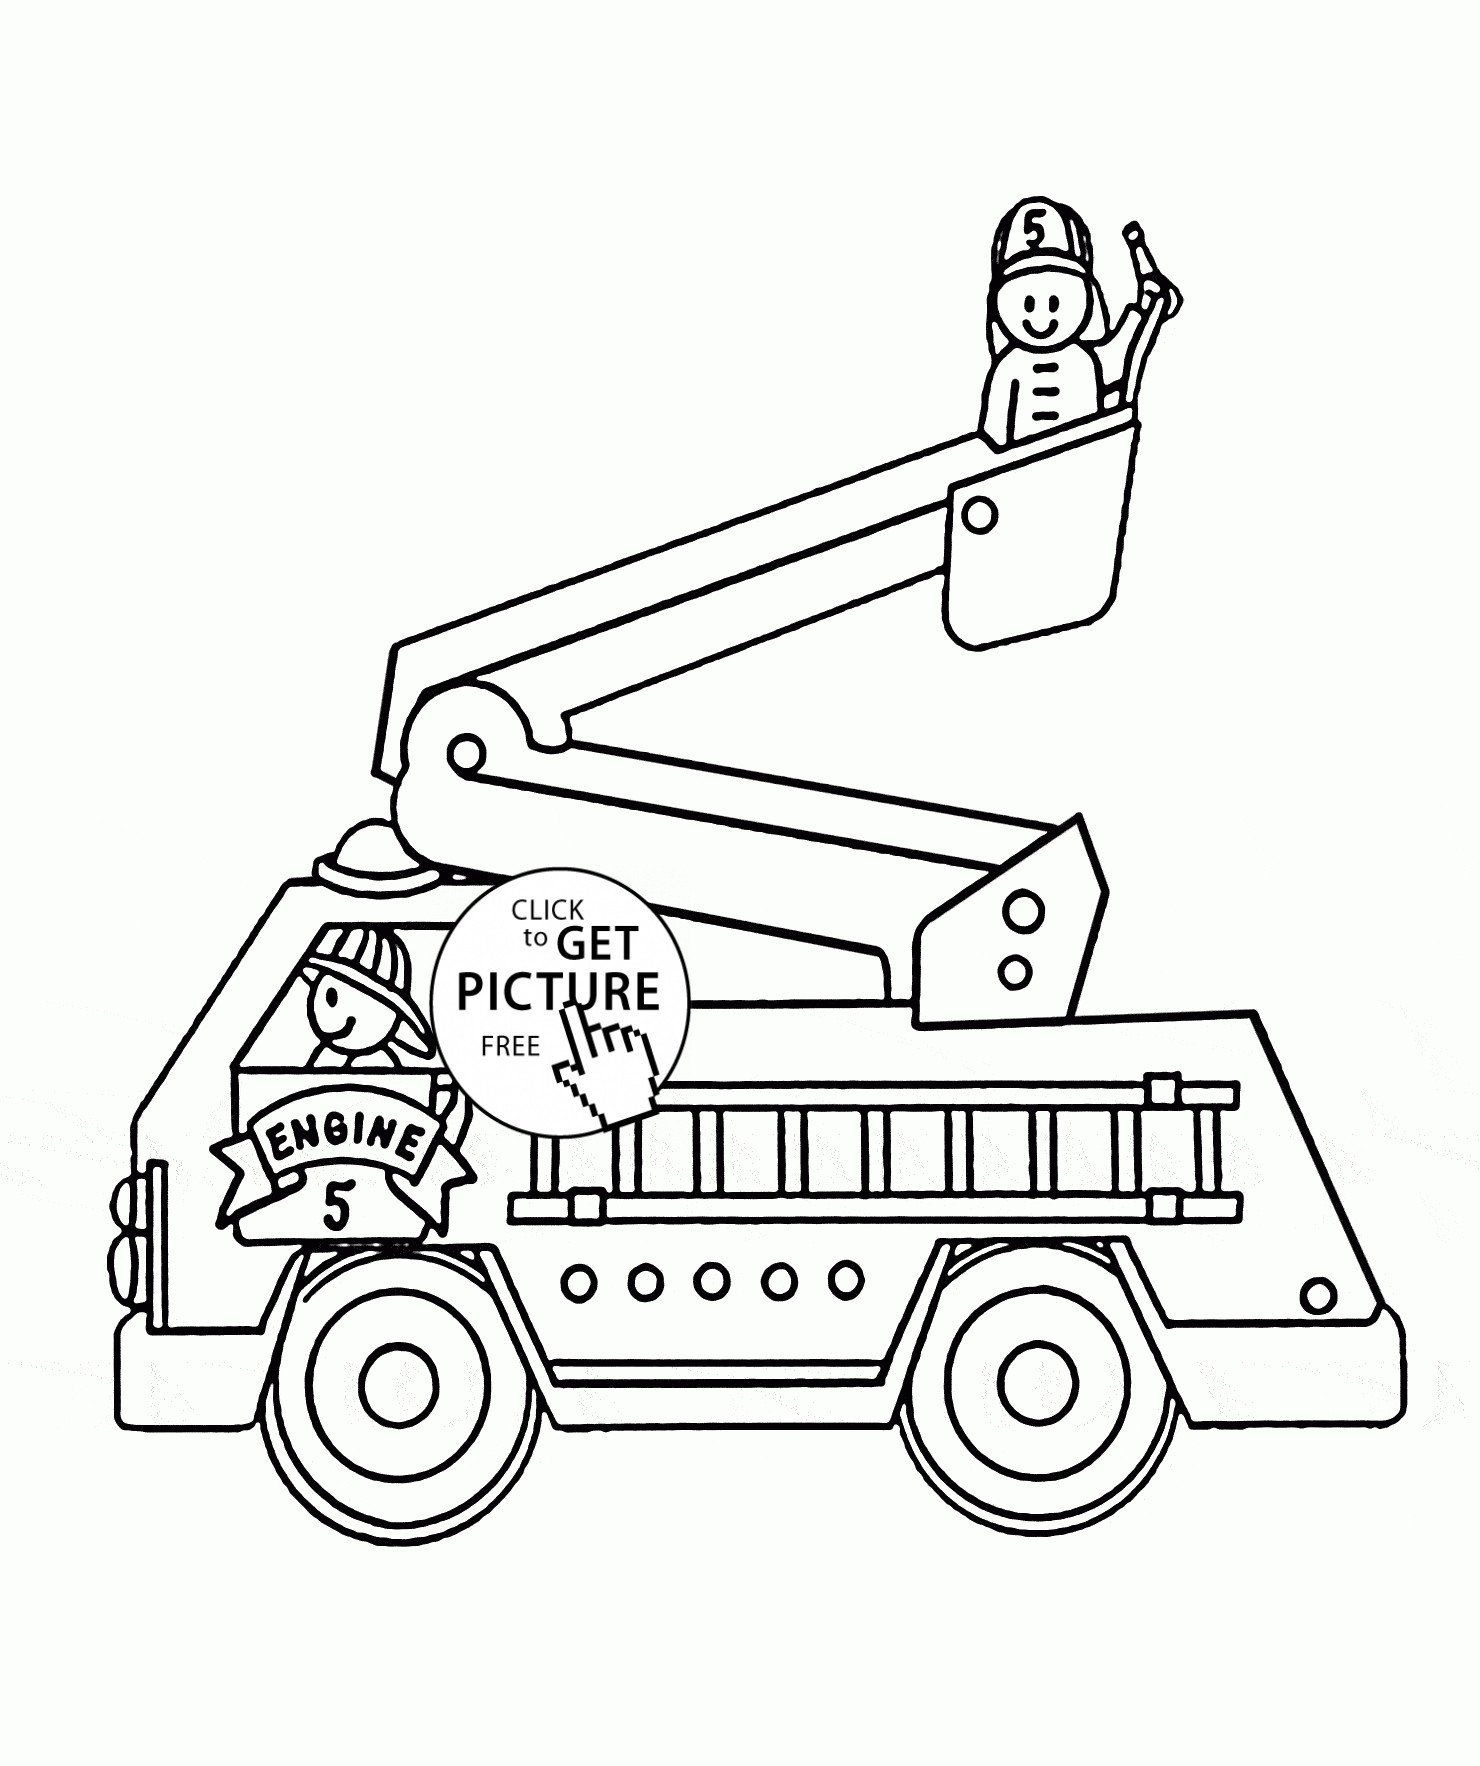 Fire Truck Coloring Page Awesome Coloring Books Fantastic Free Truck Coloring Pages Firetruck Coloring Page Truck Coloring Pages Coloring Pages For Kids